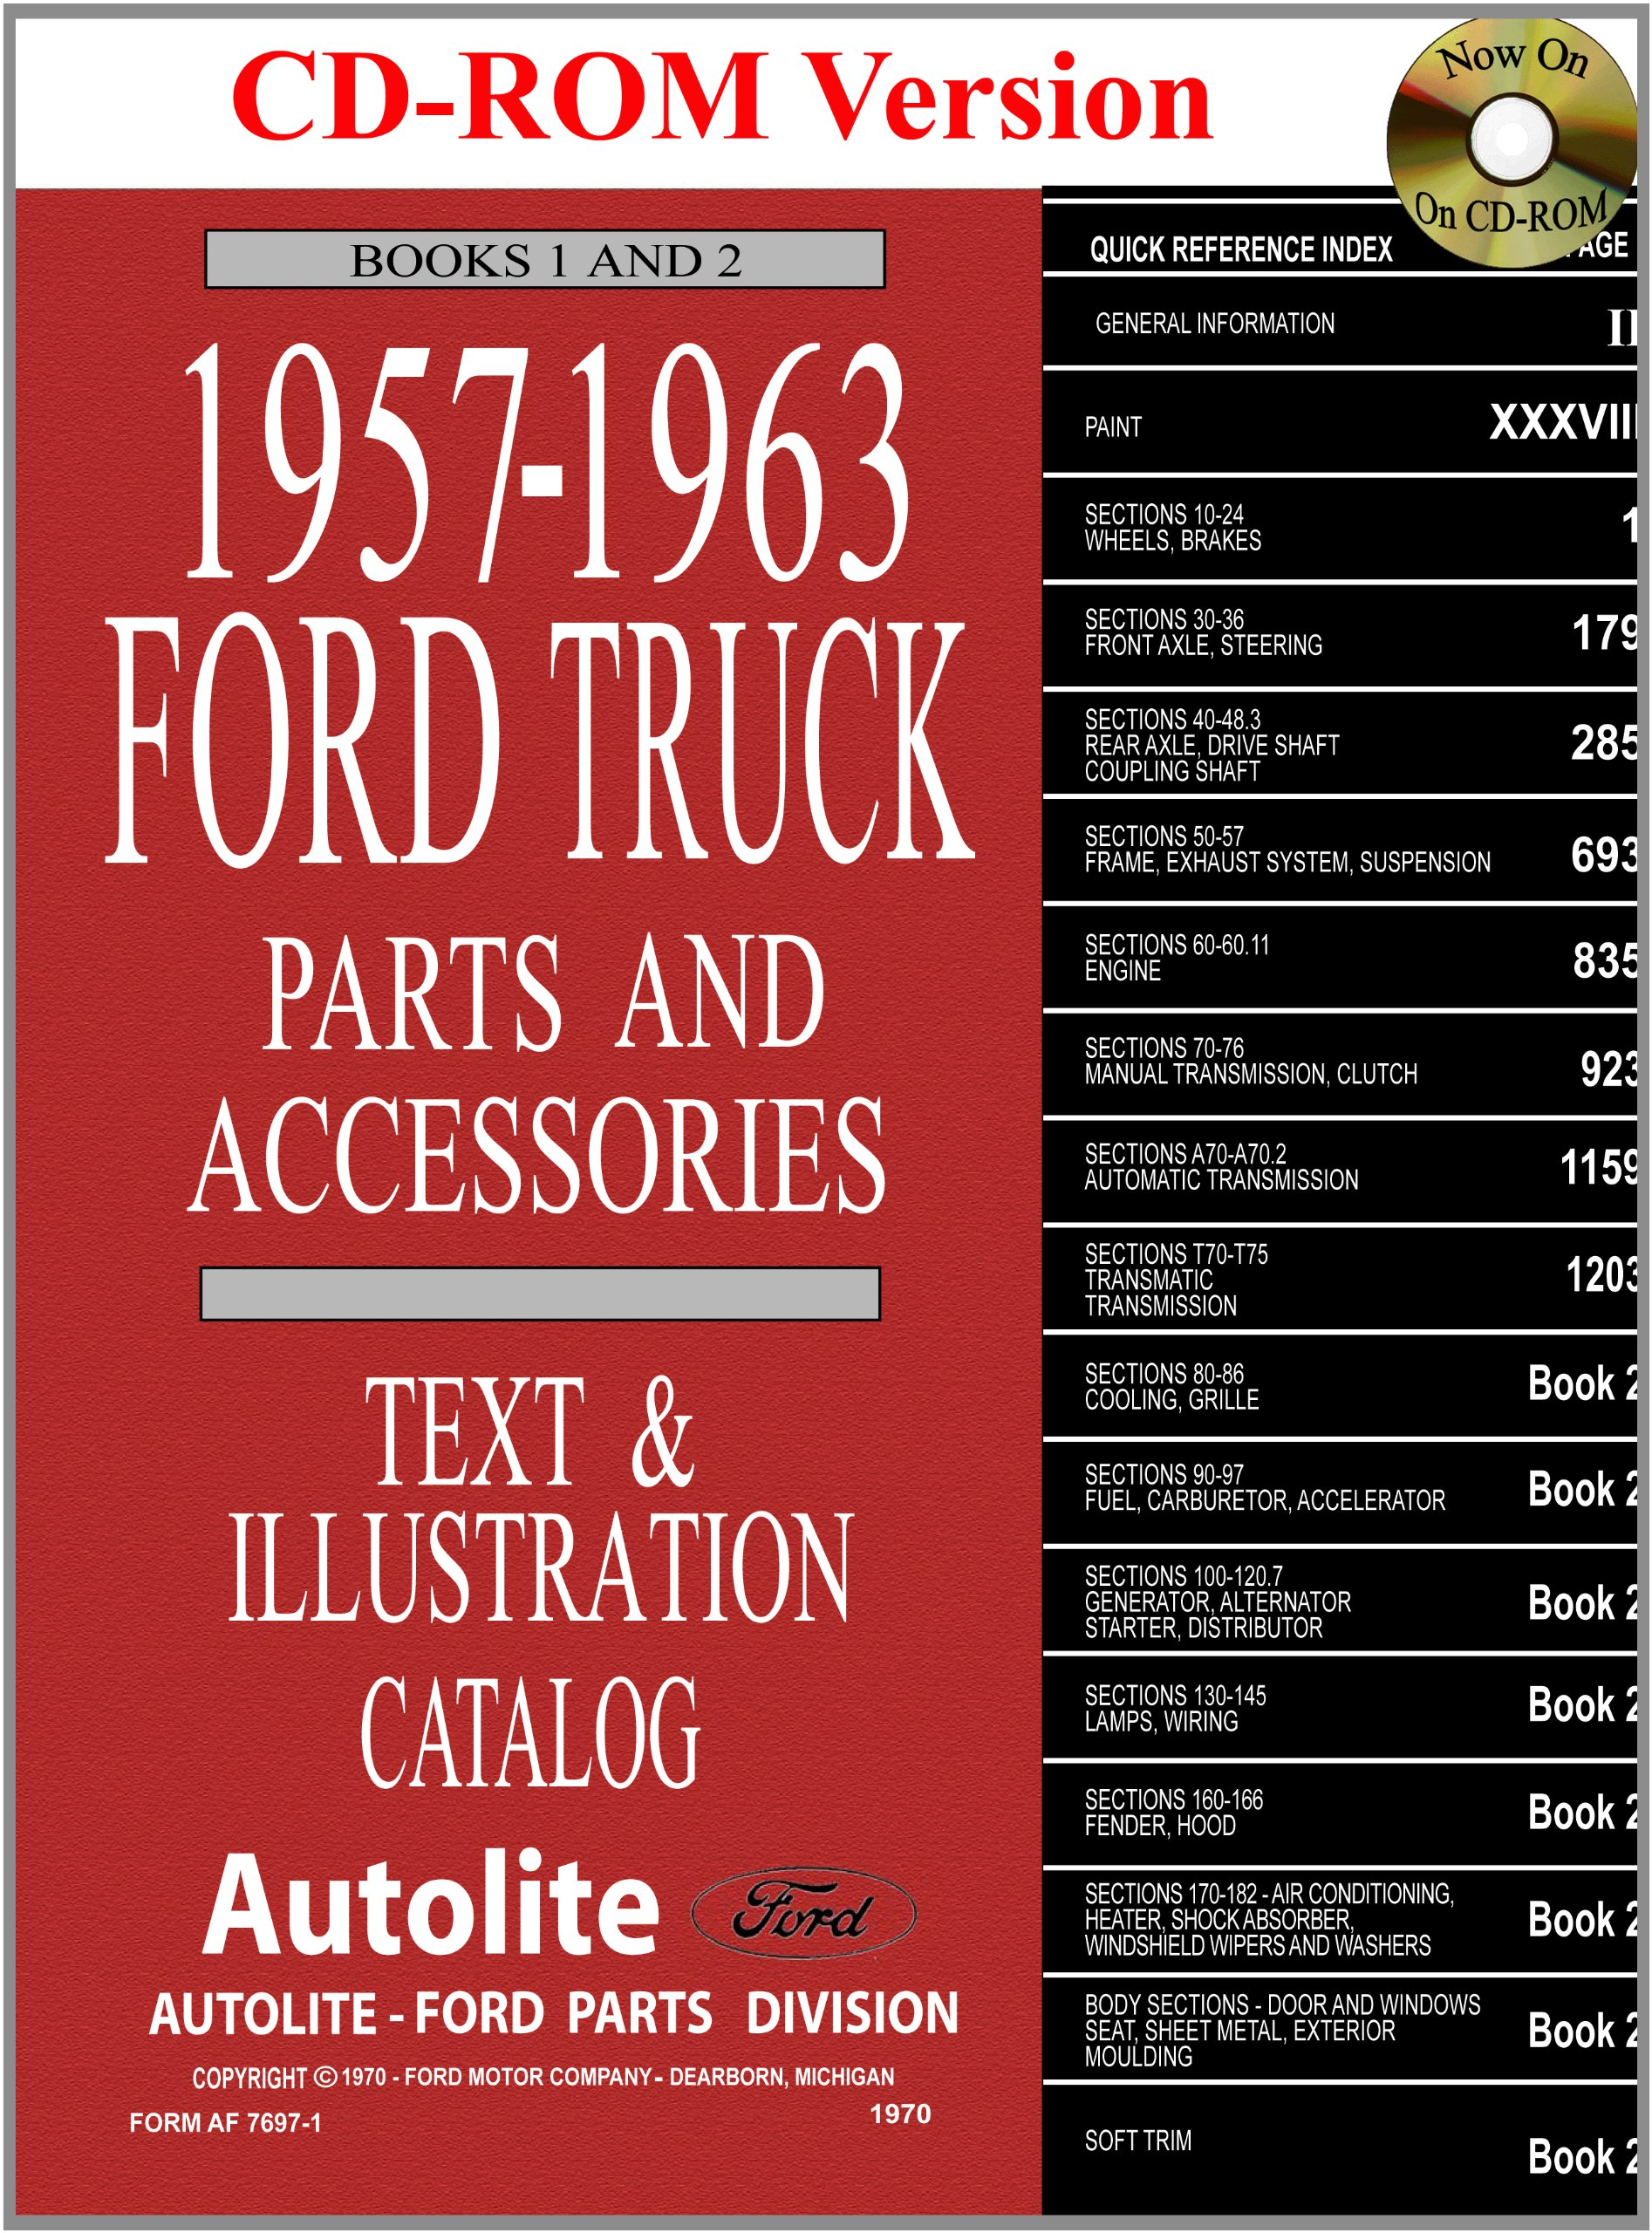 1957-63 Ford Truck Master Parts and Accessory Catalog pdf epub